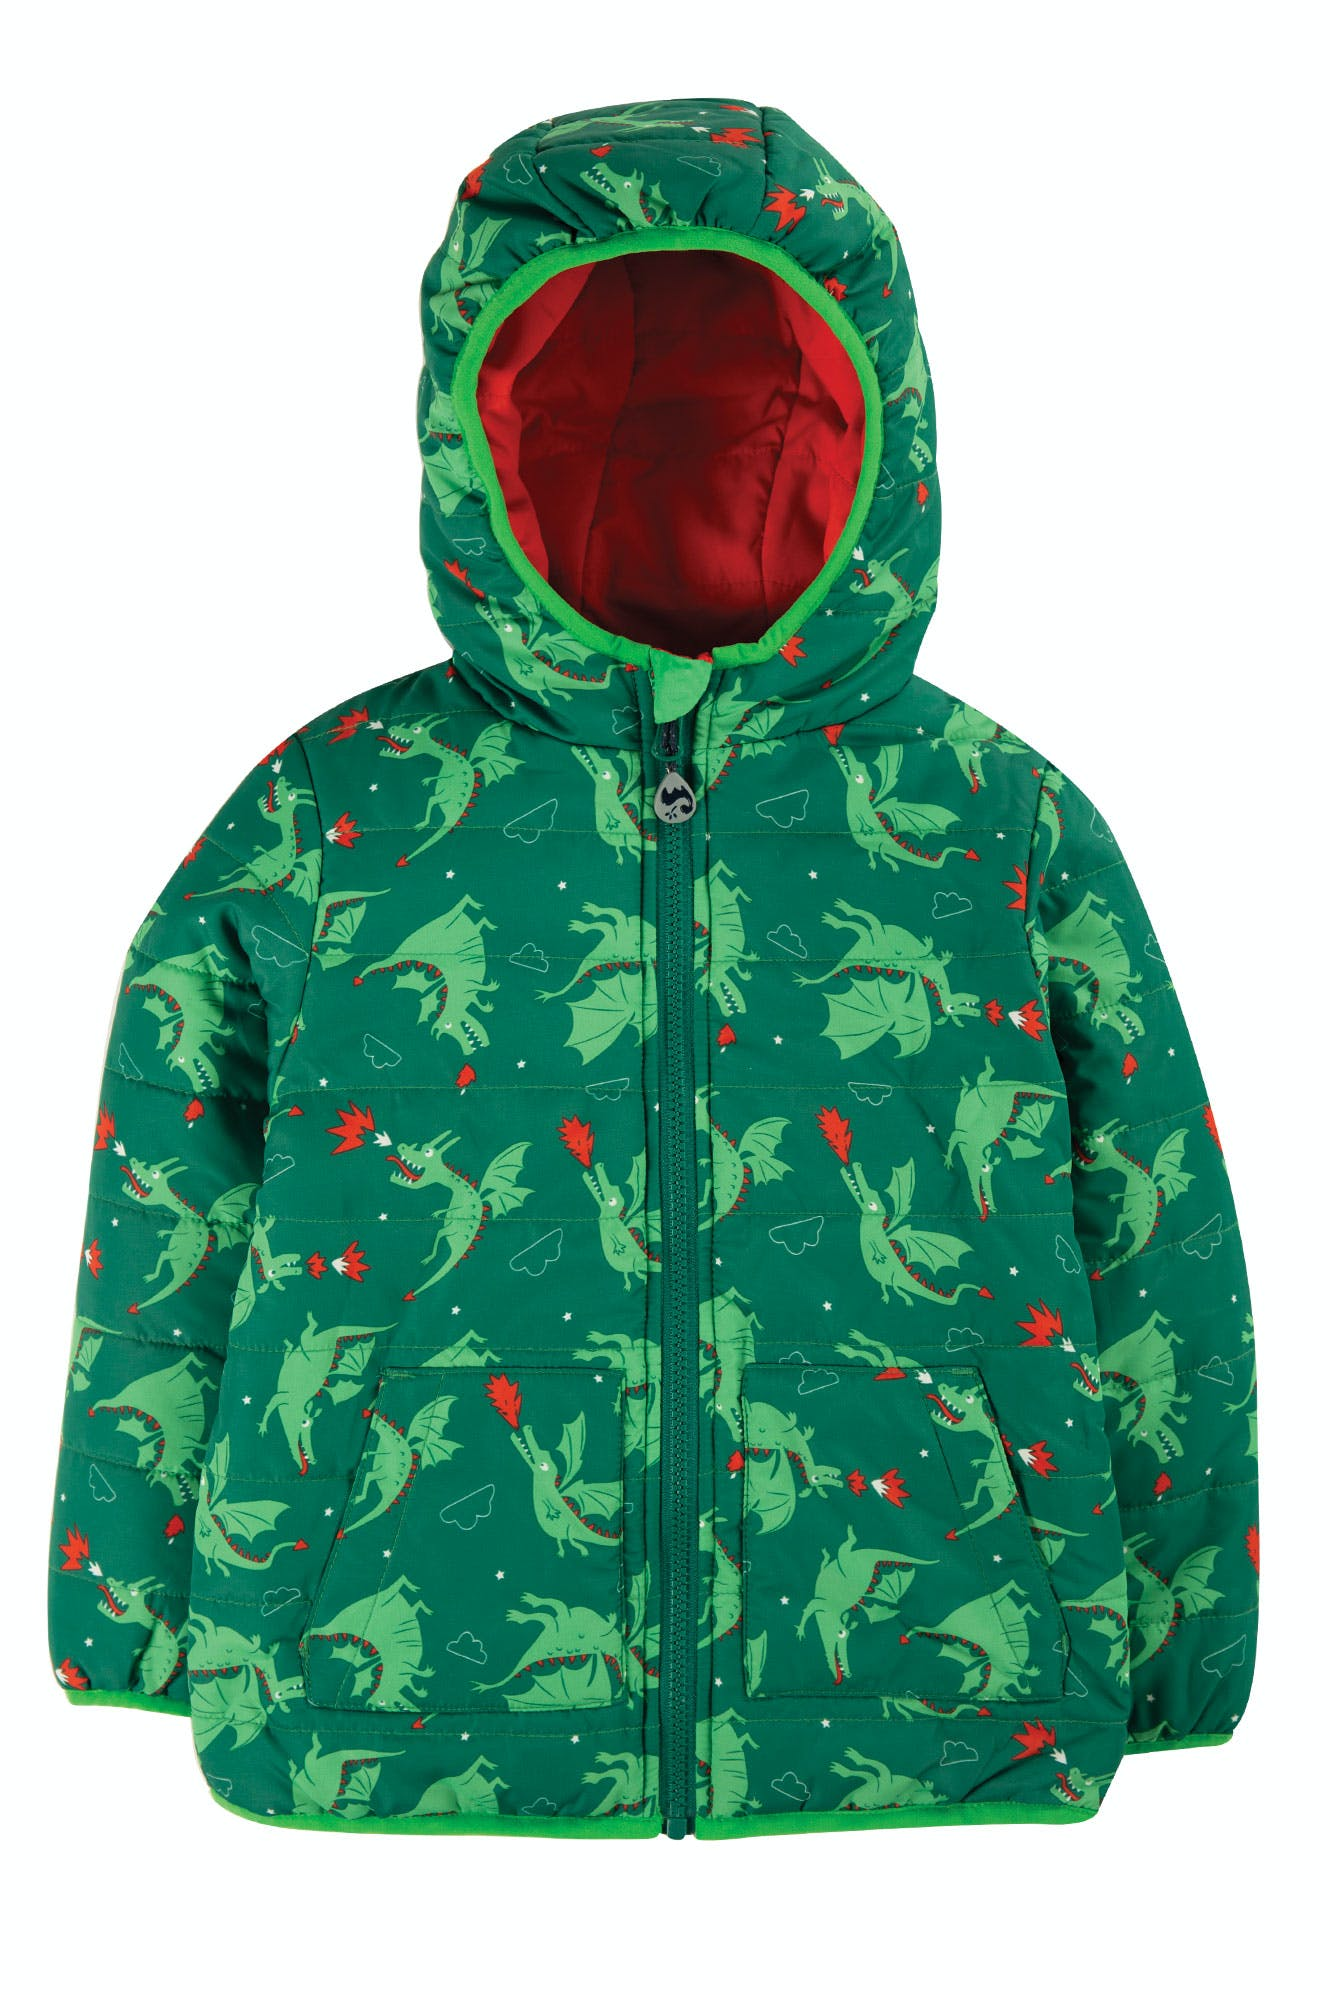 Click to view product details and reviews for Reversible Toasty Trail Jacket.